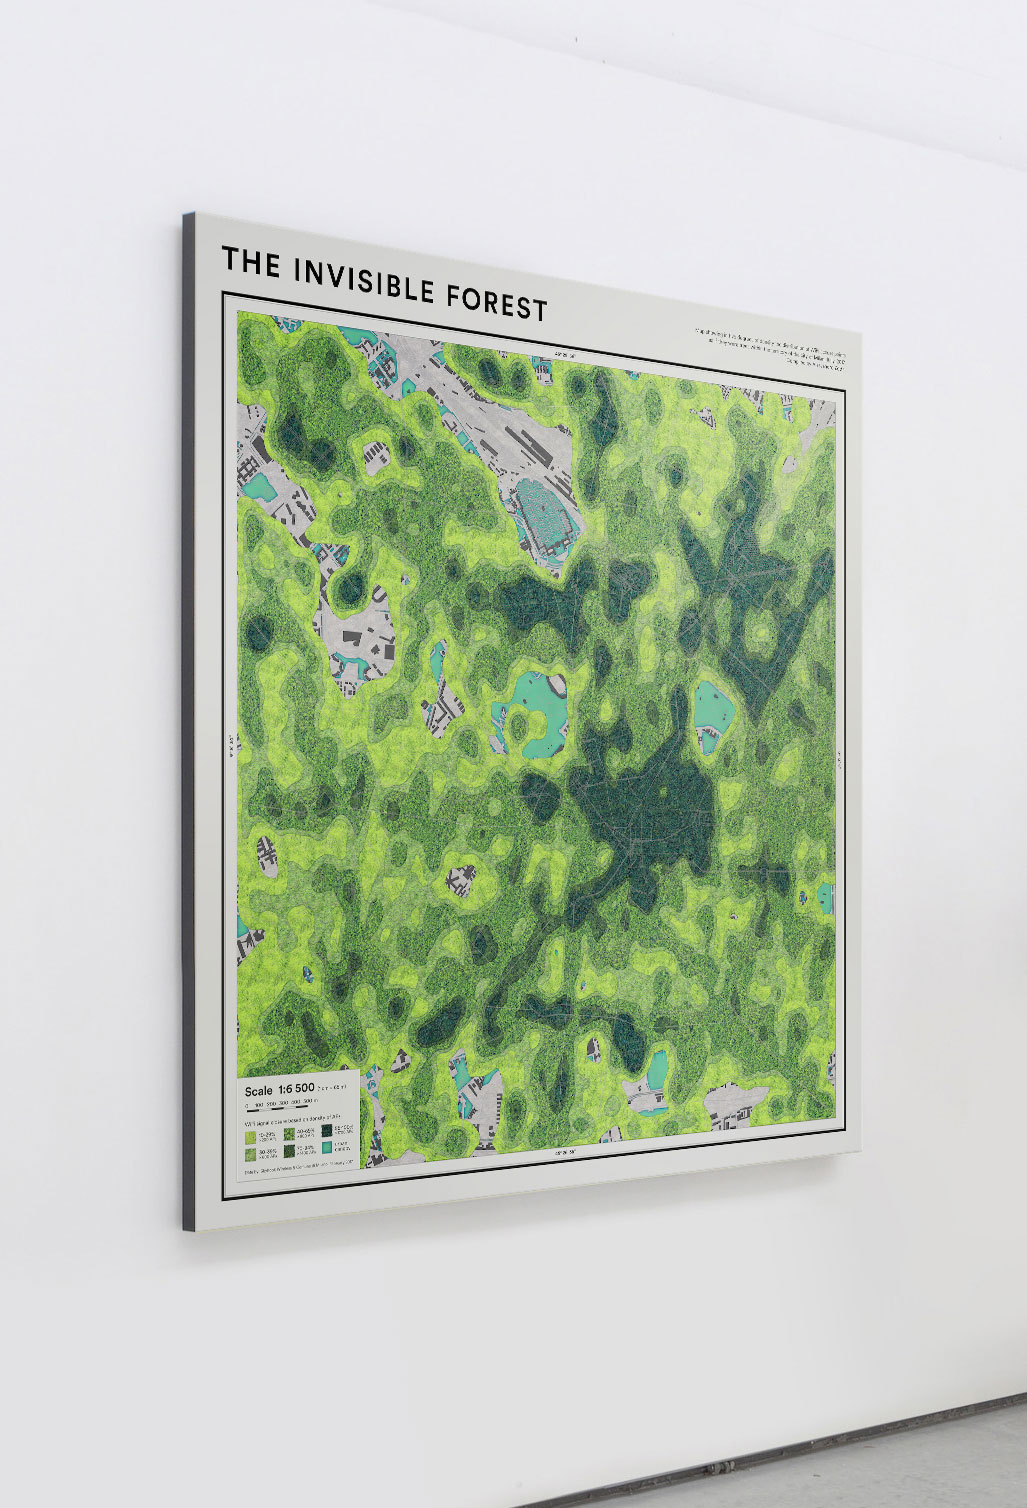 The Invisible Forest exhibition